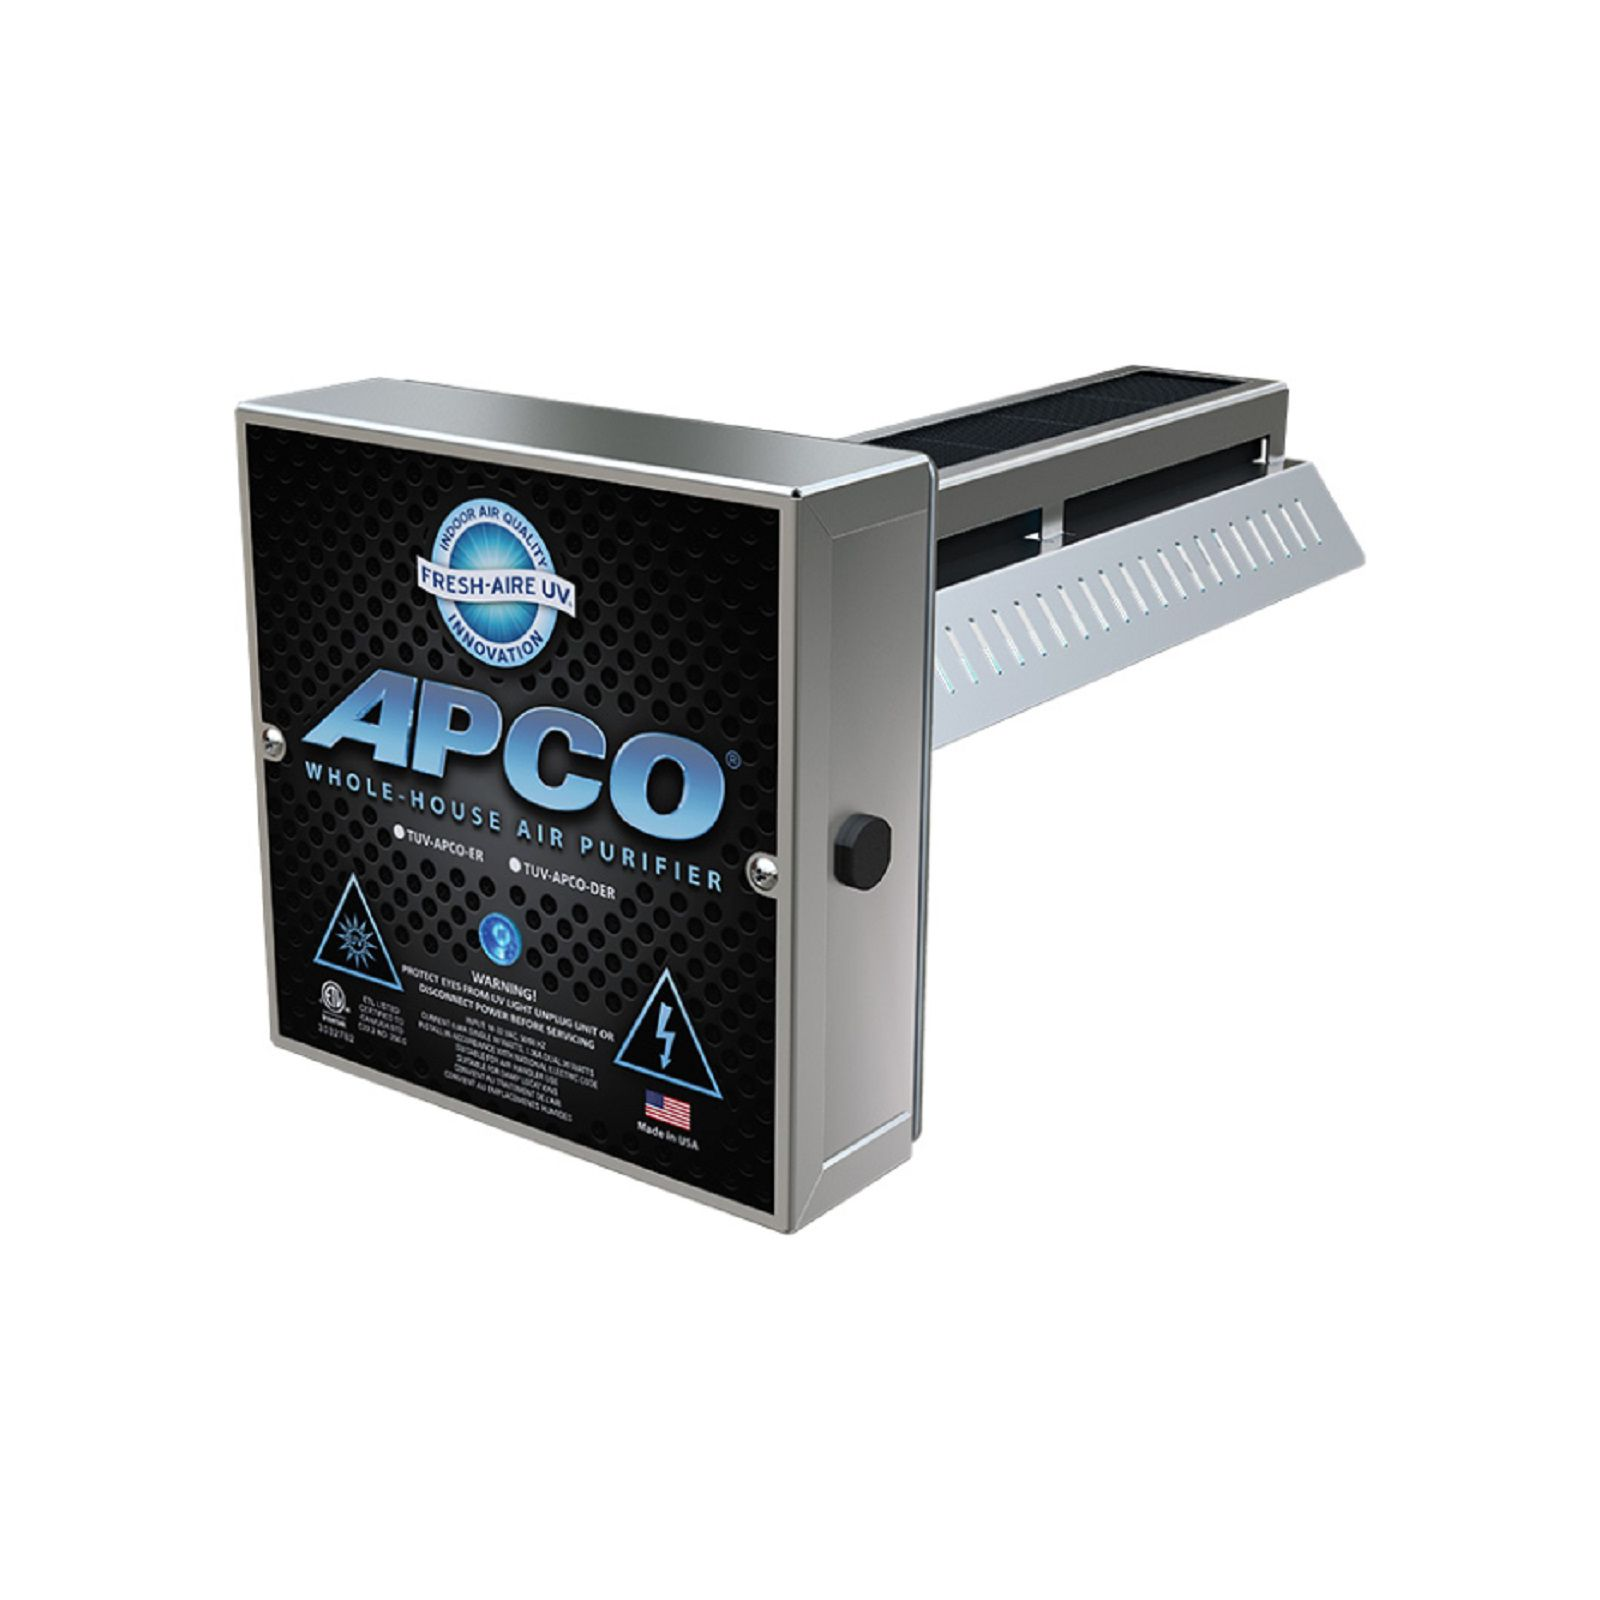 Fresh Aire TUV-APCO-SI2-P - Duct Mount UV System-A 110/277 VAC Single Lamp, TUVL-215, Advanced PCO Cell, Kit bag. With Plug